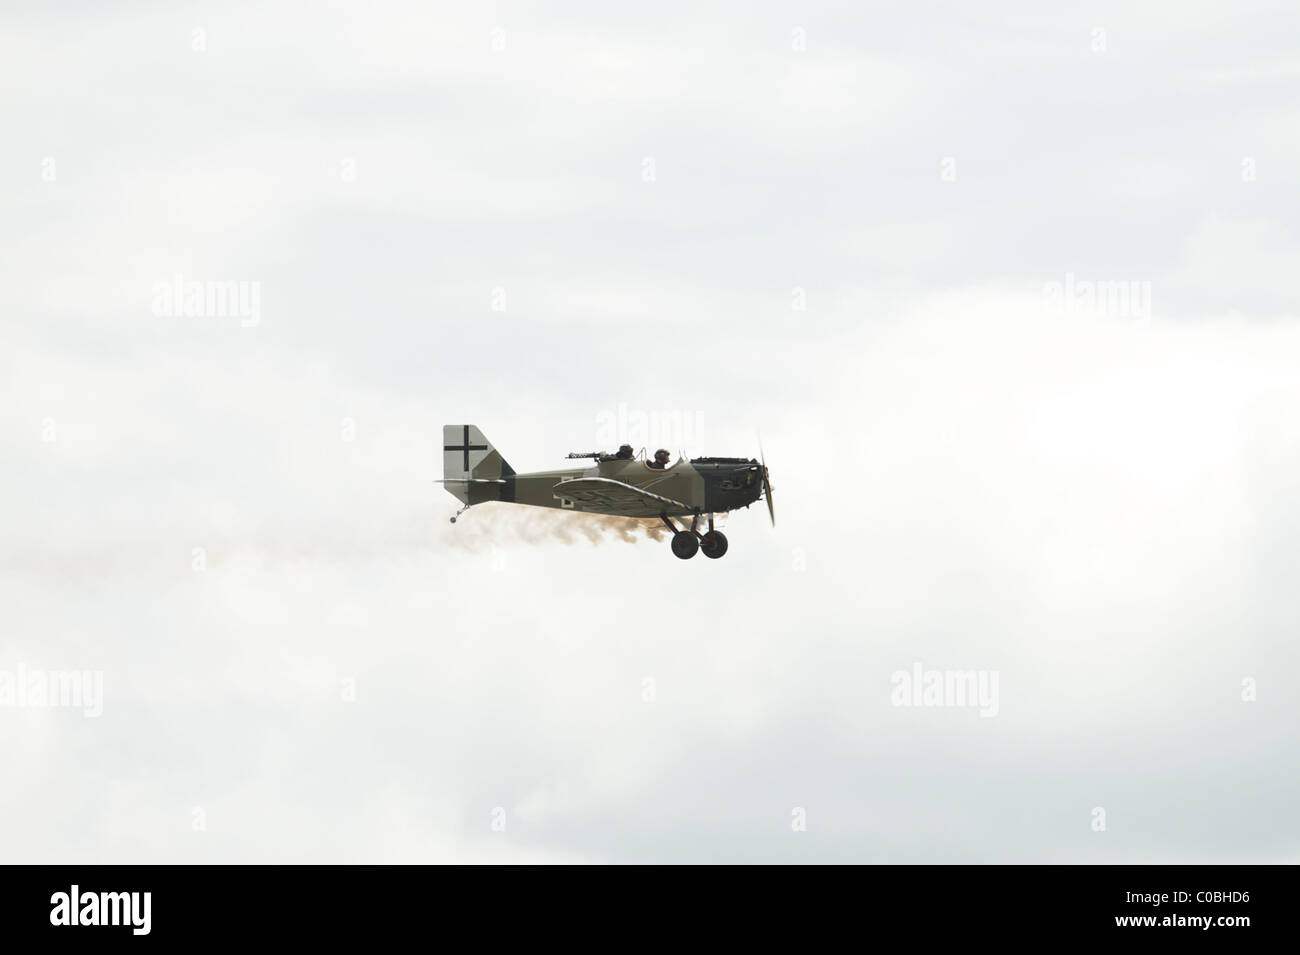 German Historic First World War aircraft at Cosford Air Show 2010 - Stock Image